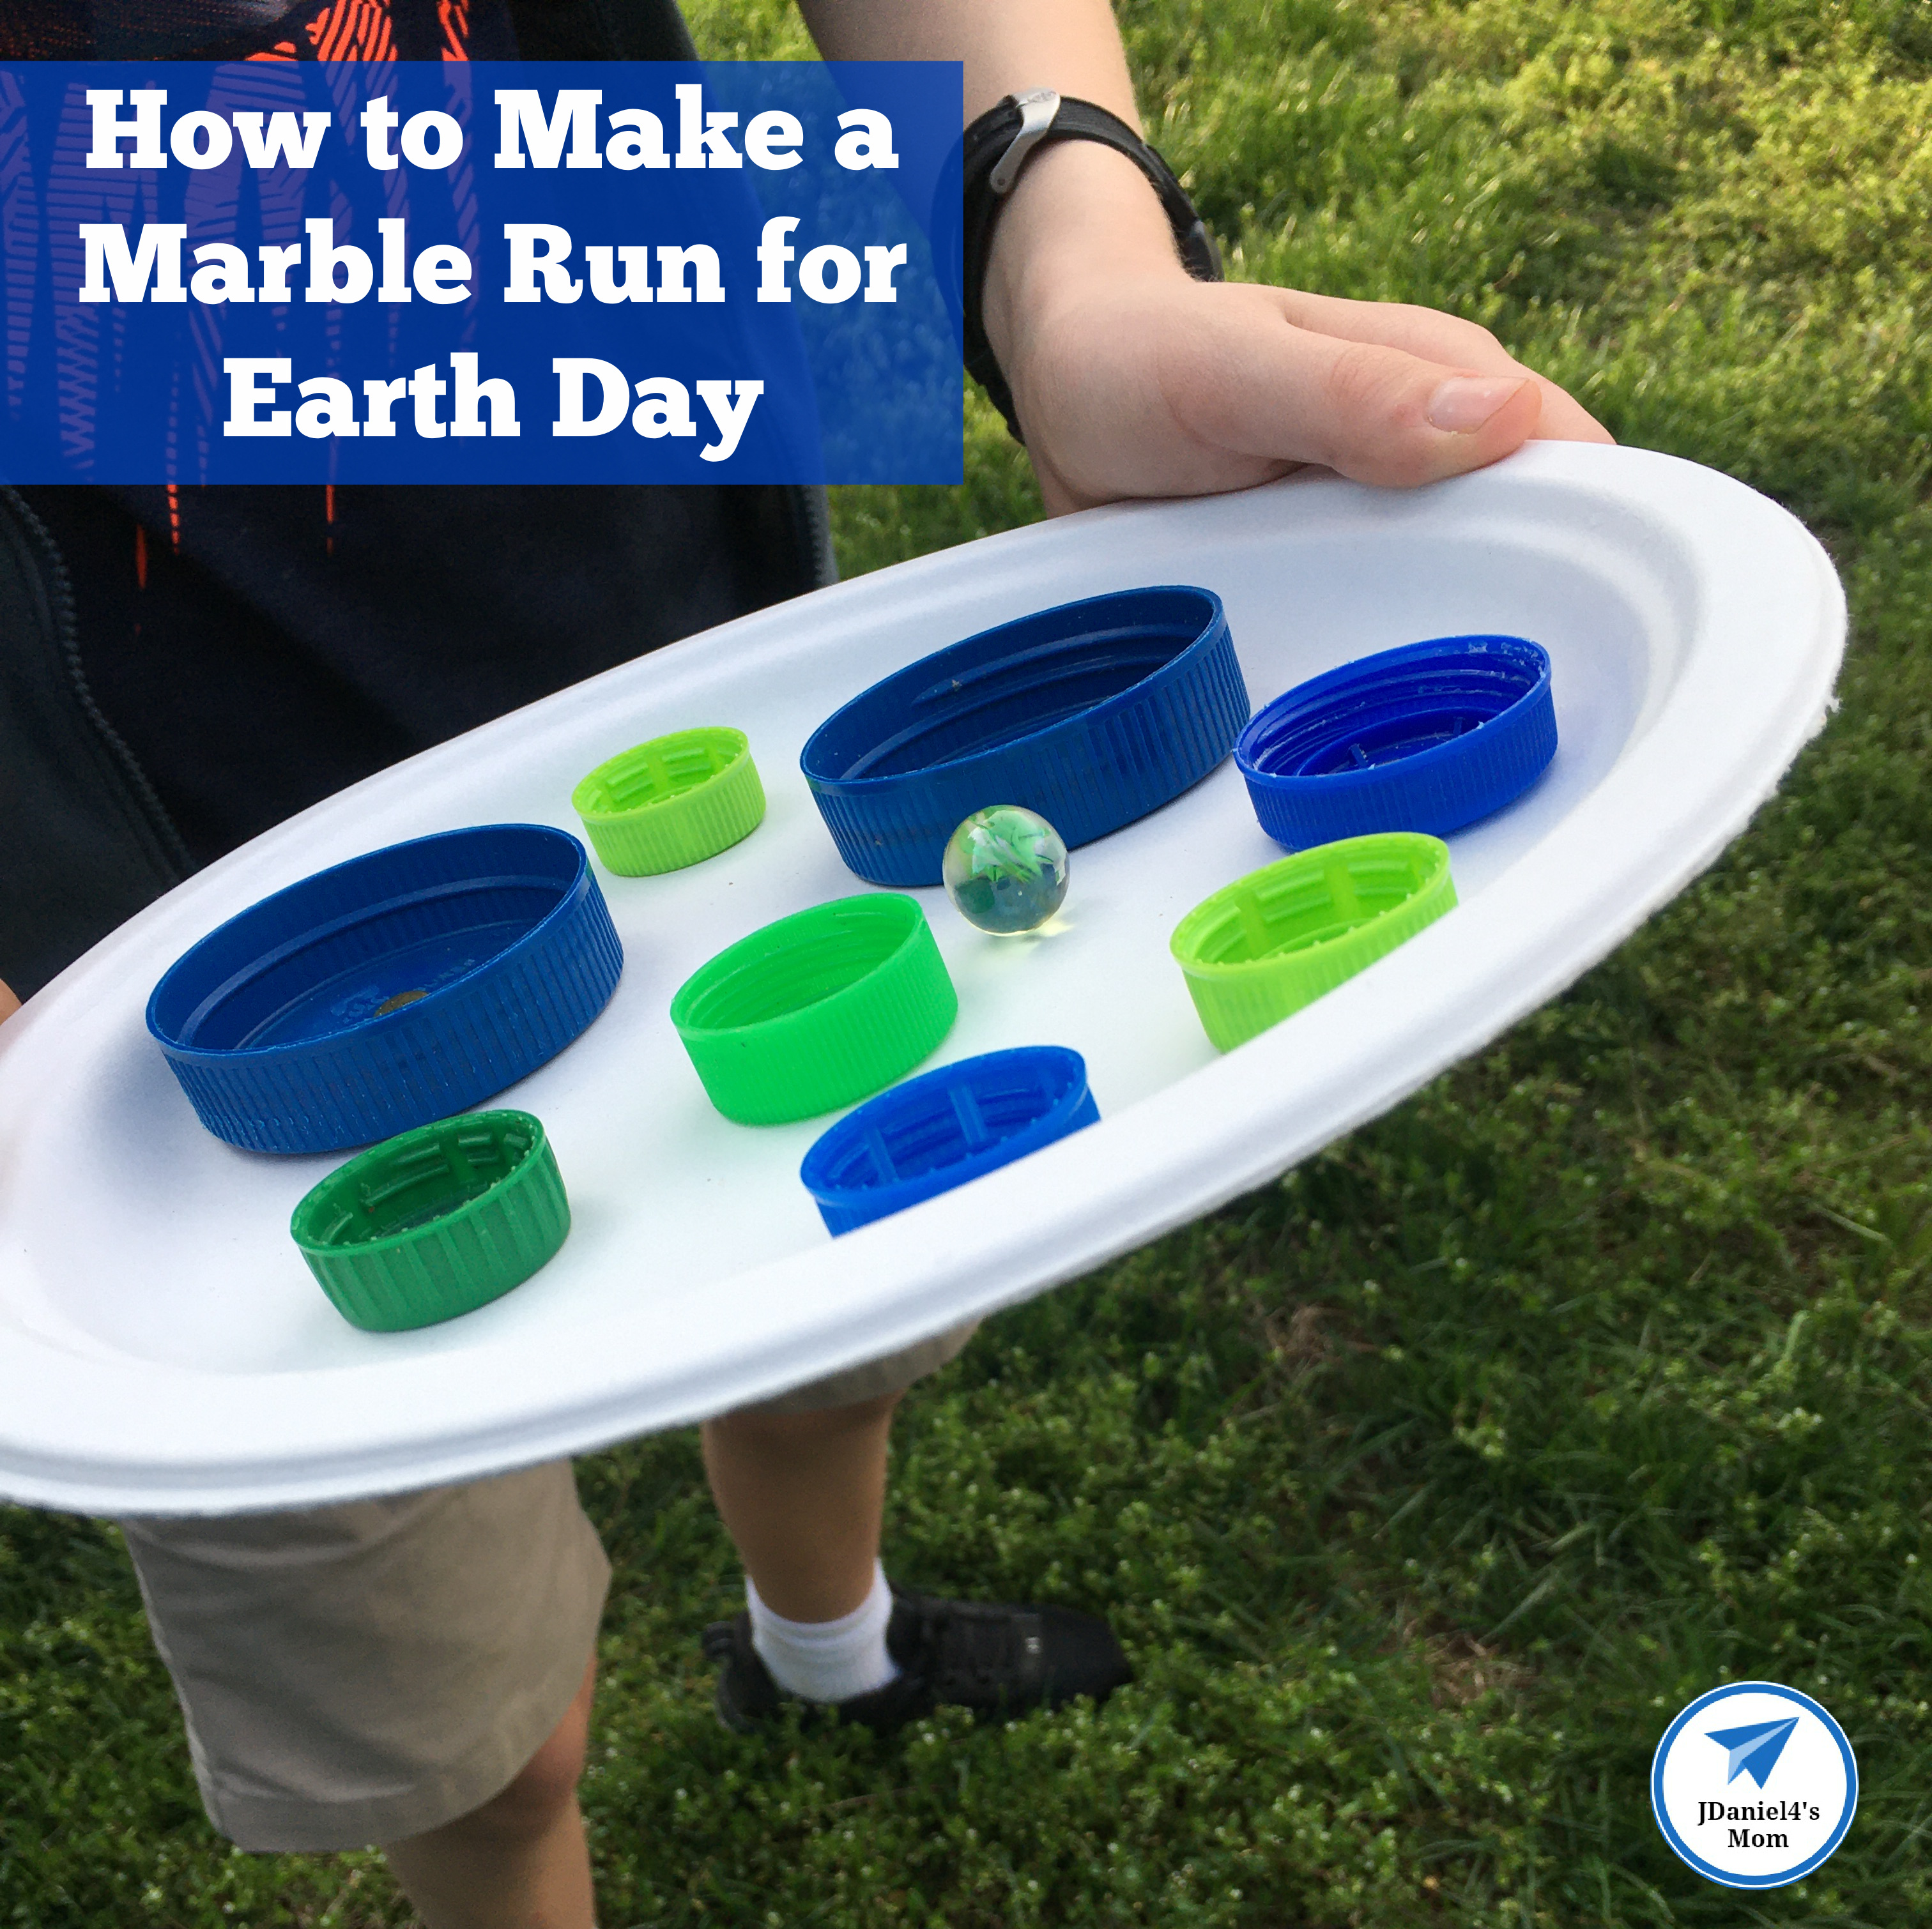 How to Make a Marble Run for Earth Day